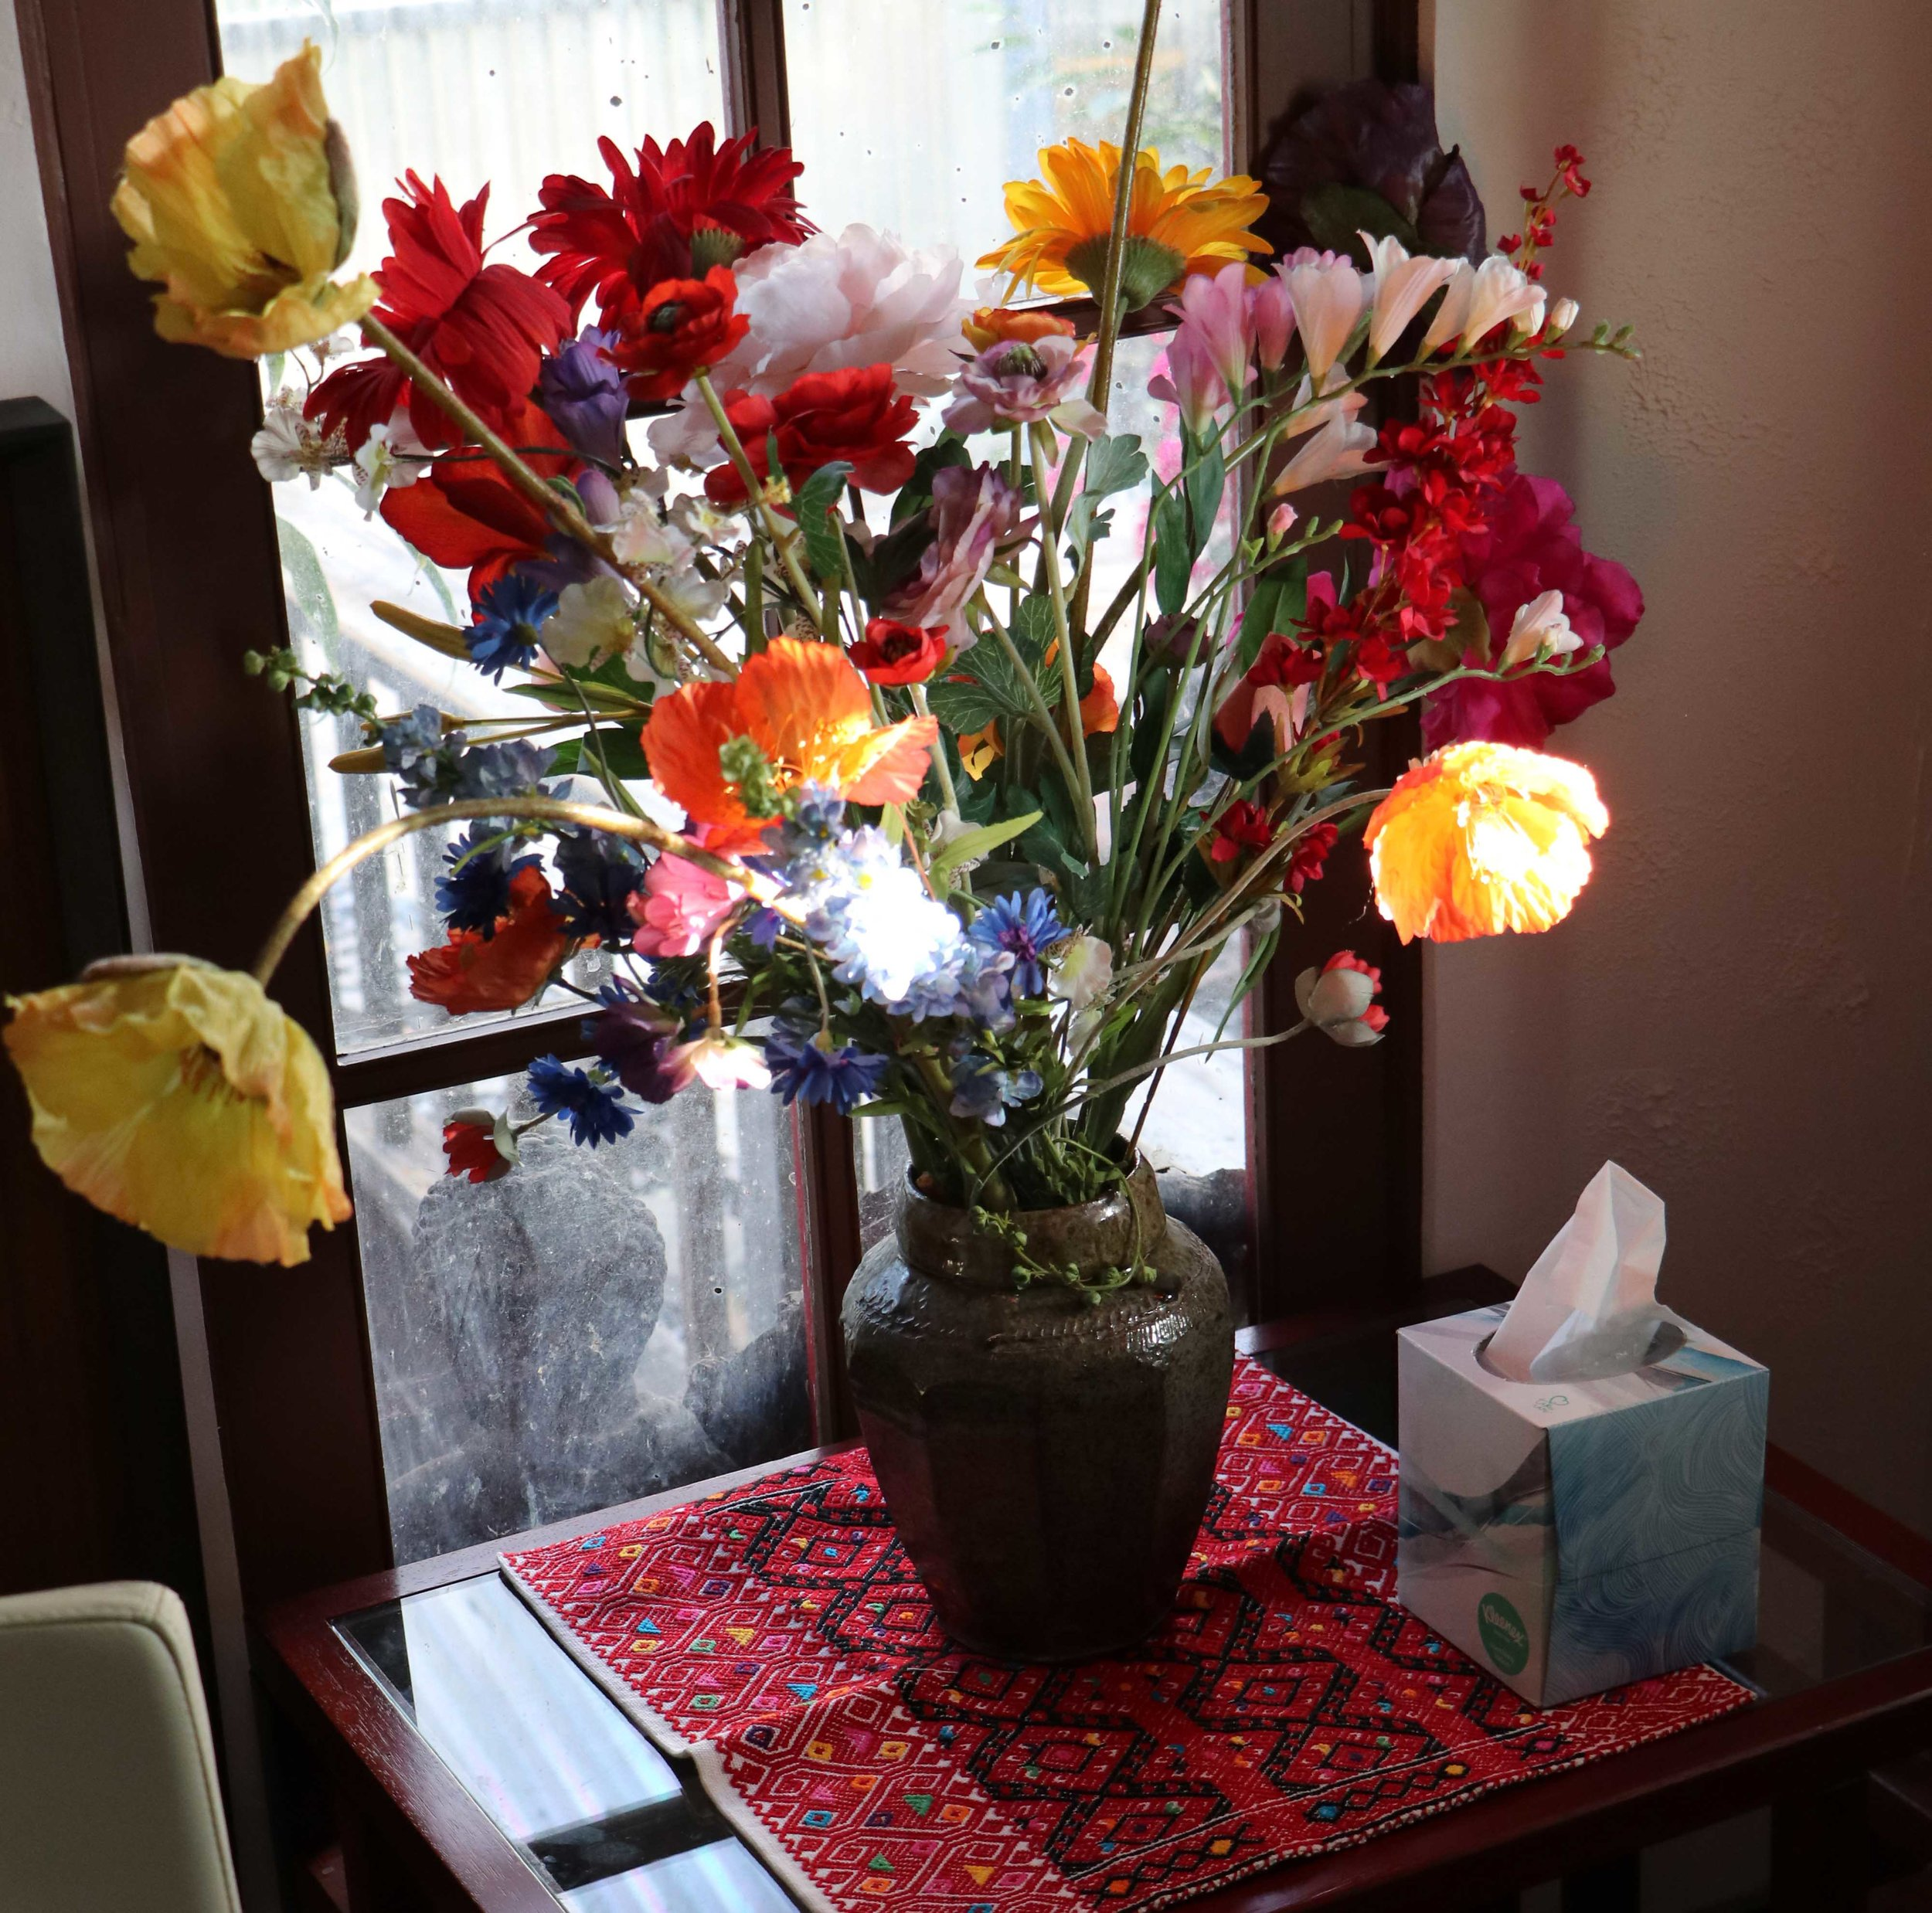 Office_2_Karin_Schlanger_MFT_Flowers.jpg